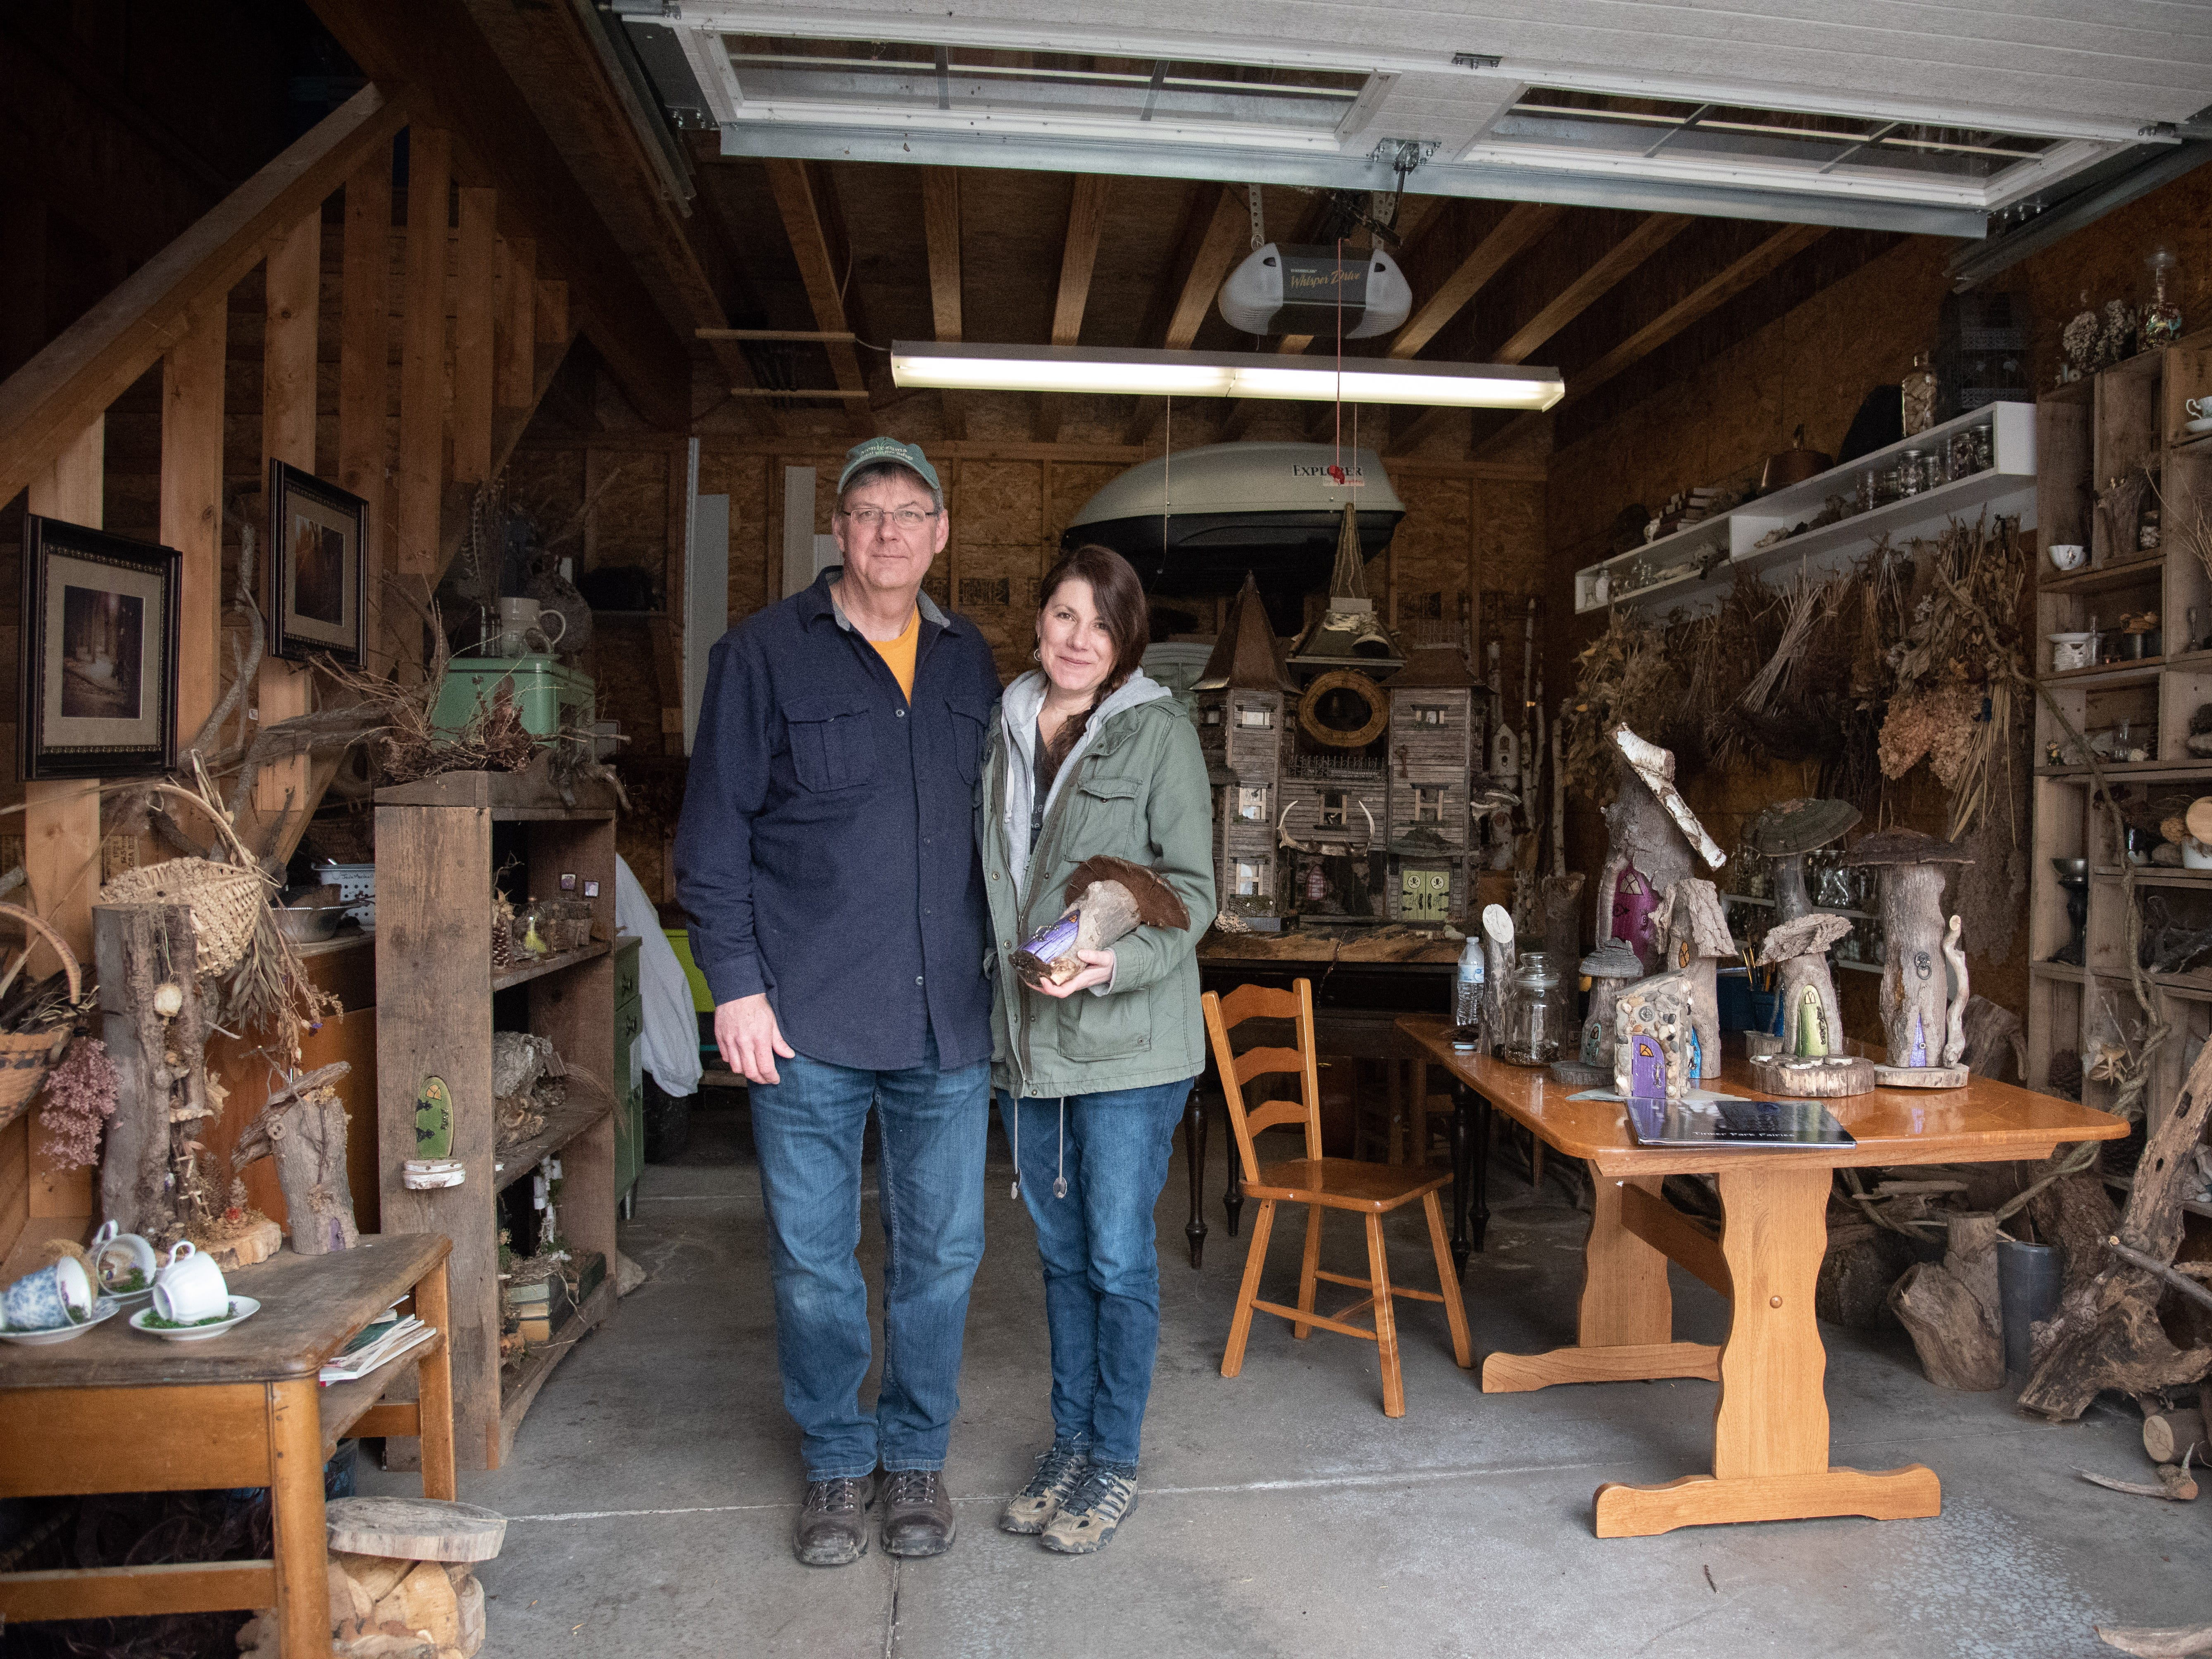 Betsy Marshall and Chris Marshall stand inside their magical garage-turned-workshop at their home in Rush. The two have been creating and maintaining the fairy houses at Tinker Nature Park in Henrietta for five years until they were asked to remove them last week. March 24, 2019.